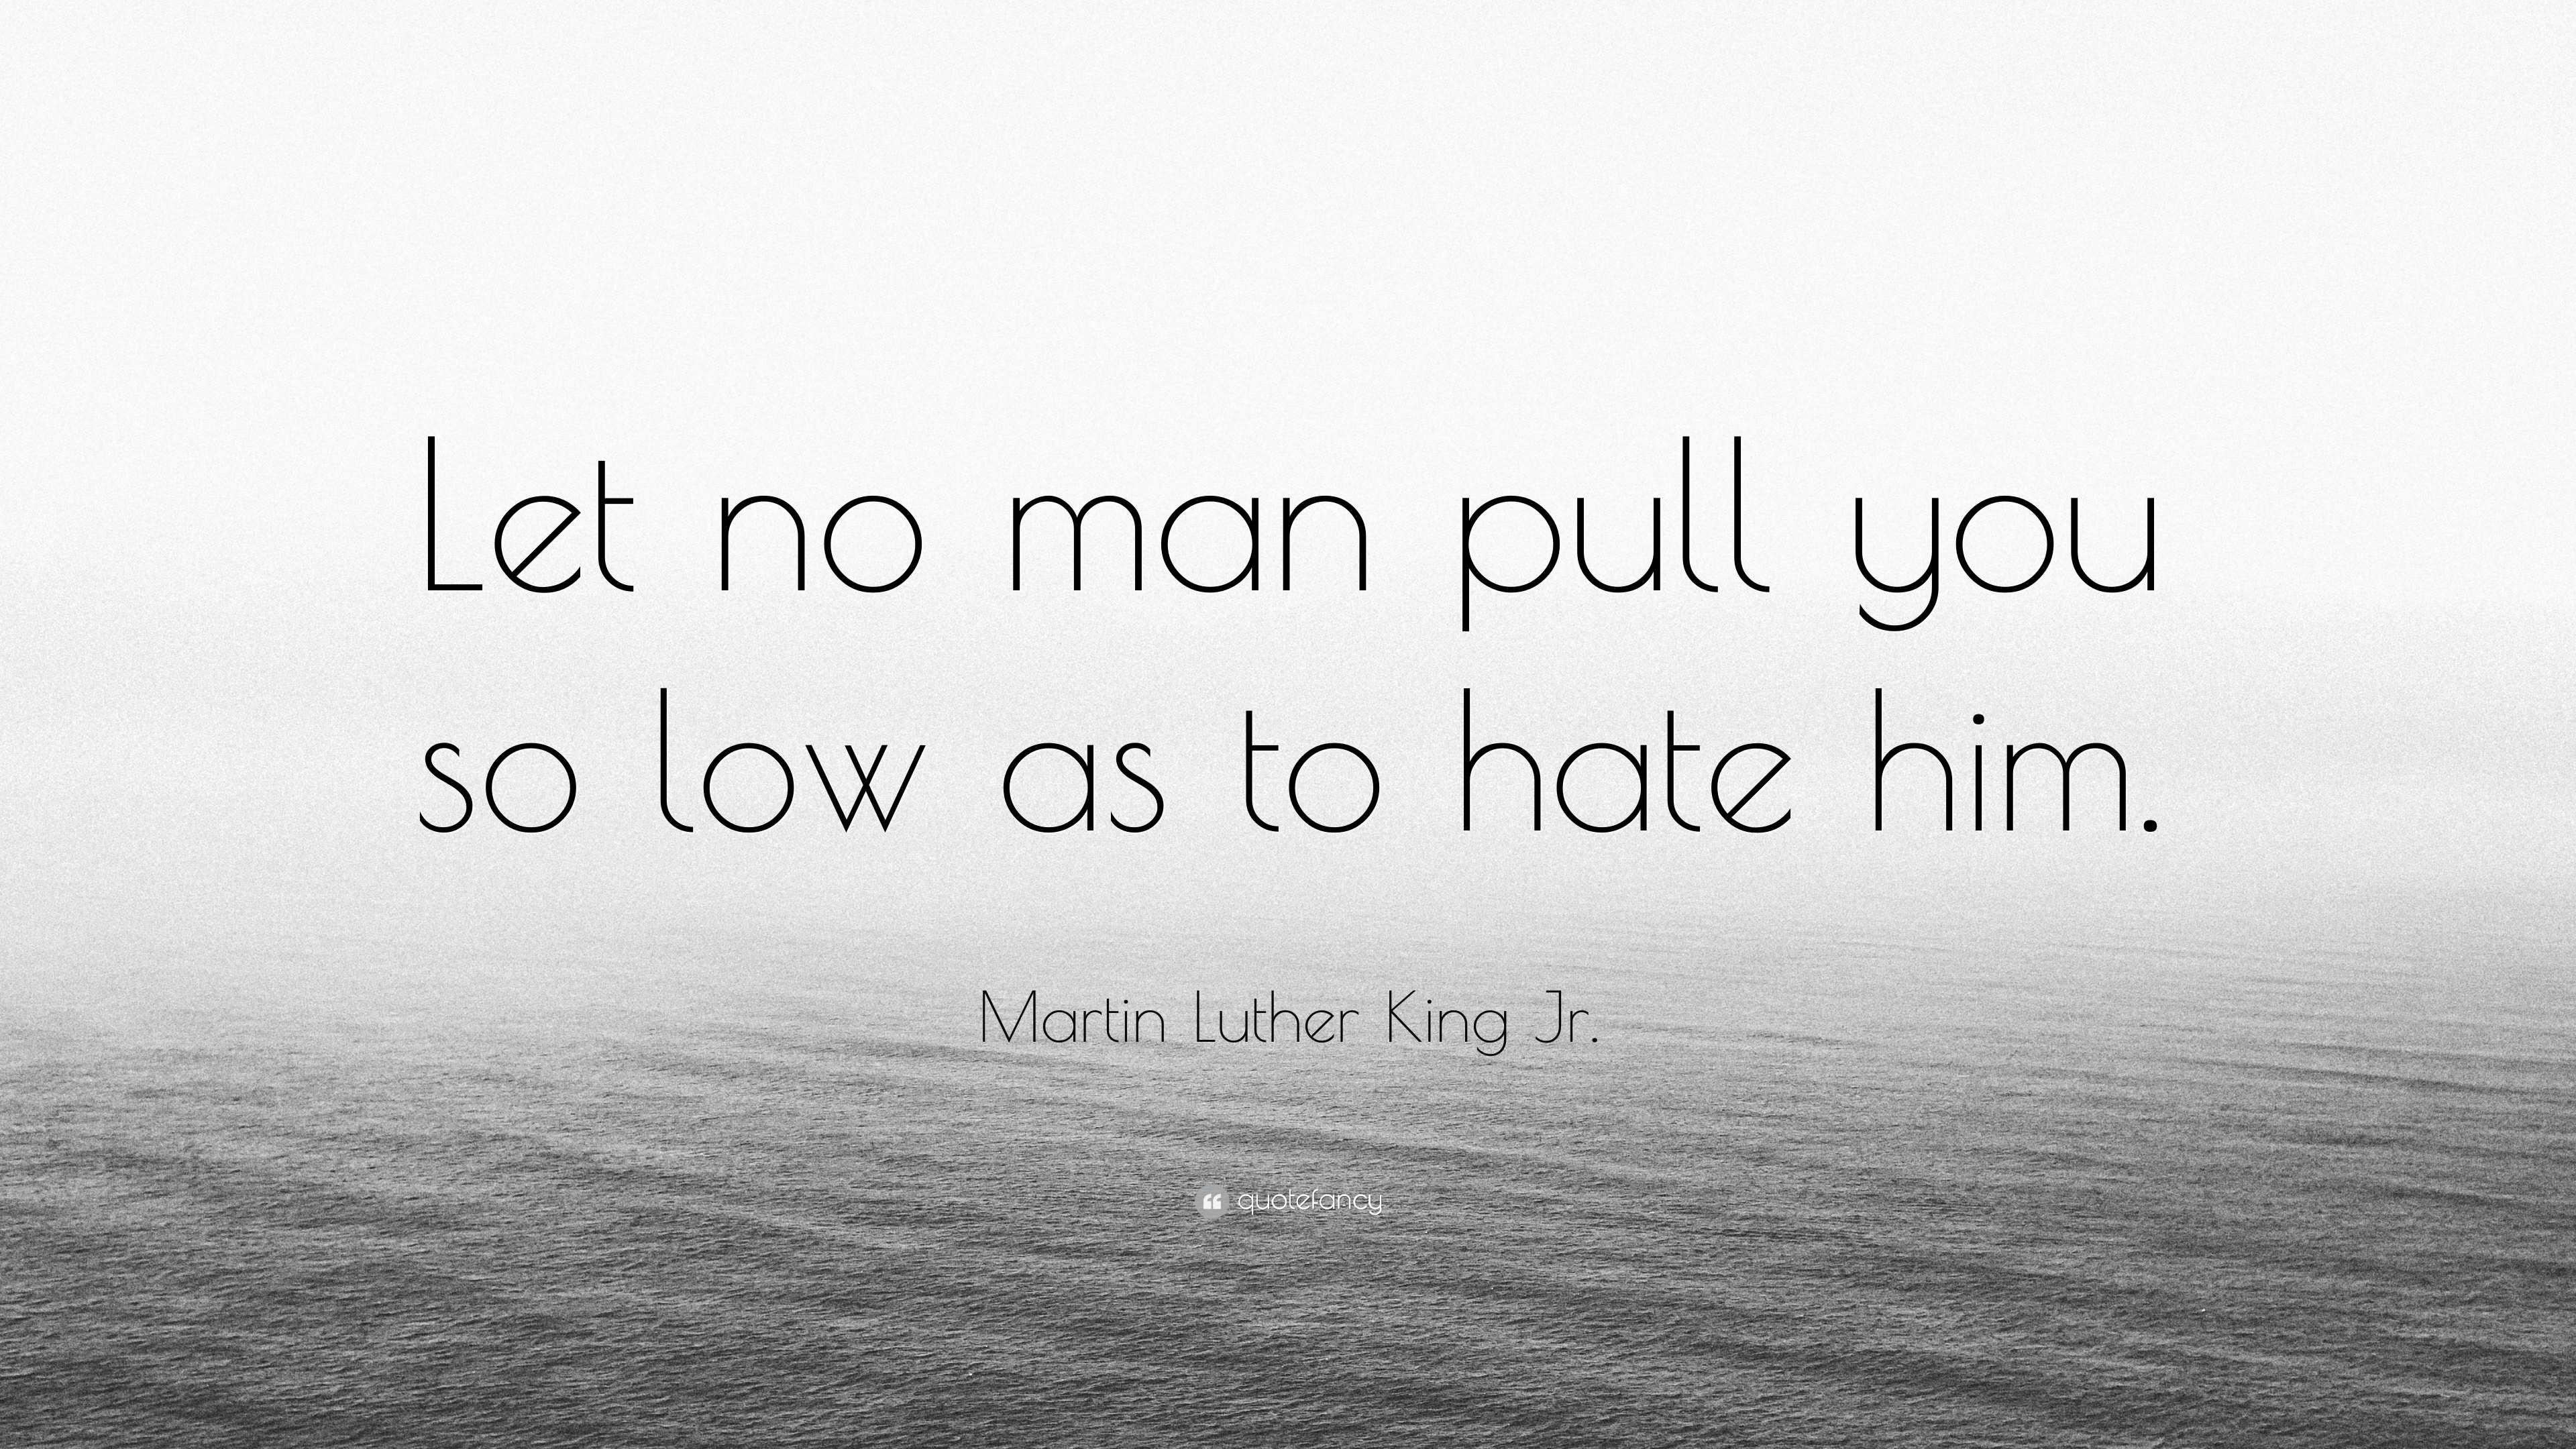 Martin Luther King Jr Quote Let No Man Pull You So Low As To Hate